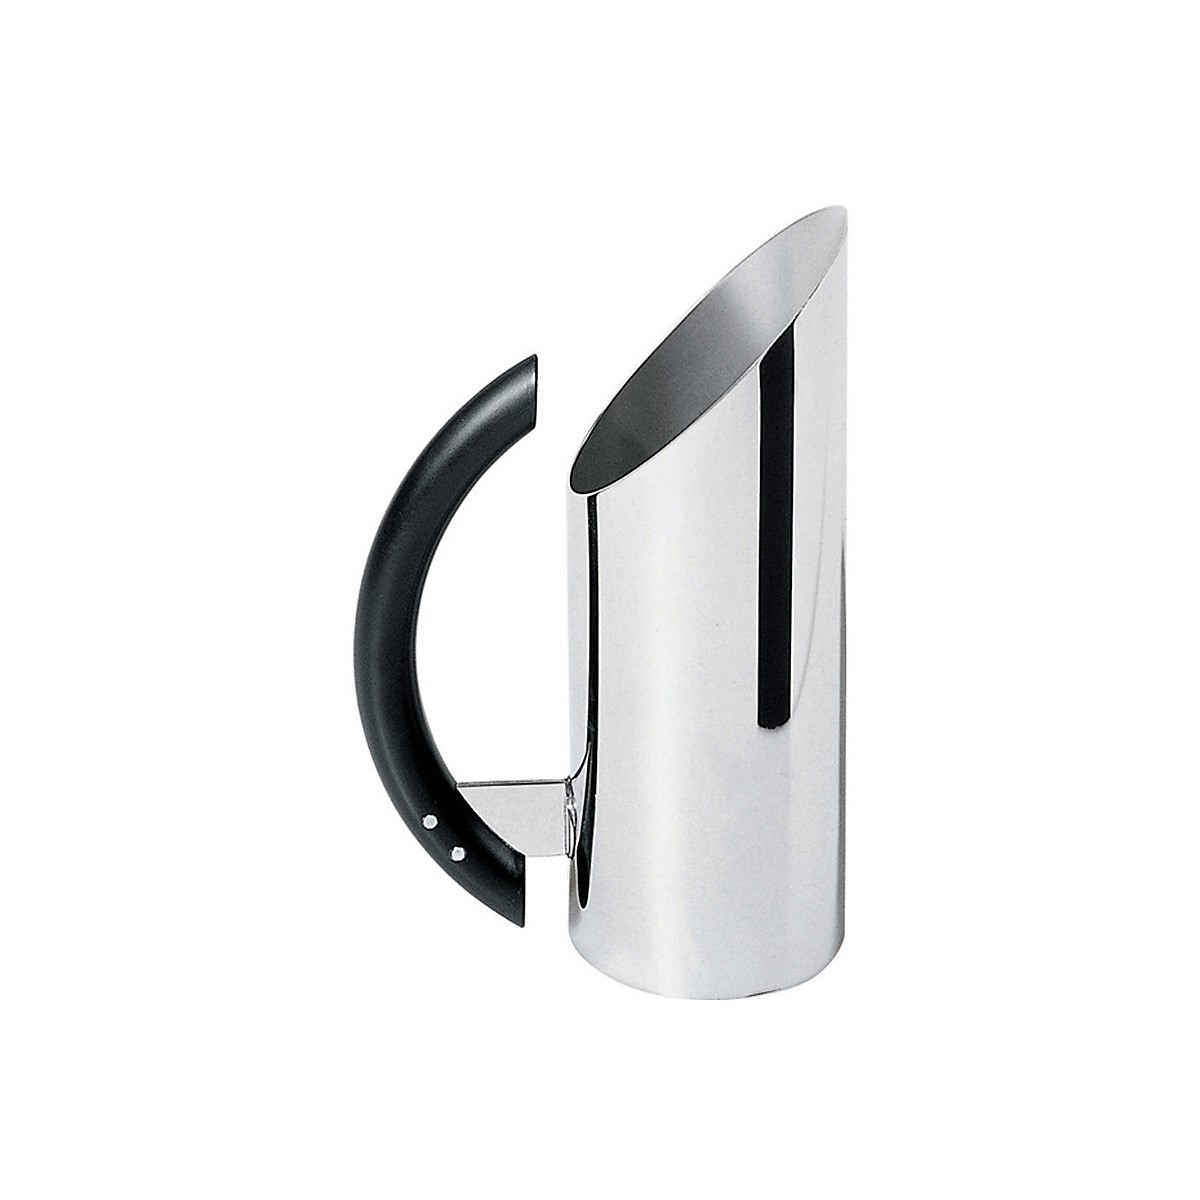 Officina Alessi - Mario Botta Mia Pitcher 0,7 L Stainless steel 2